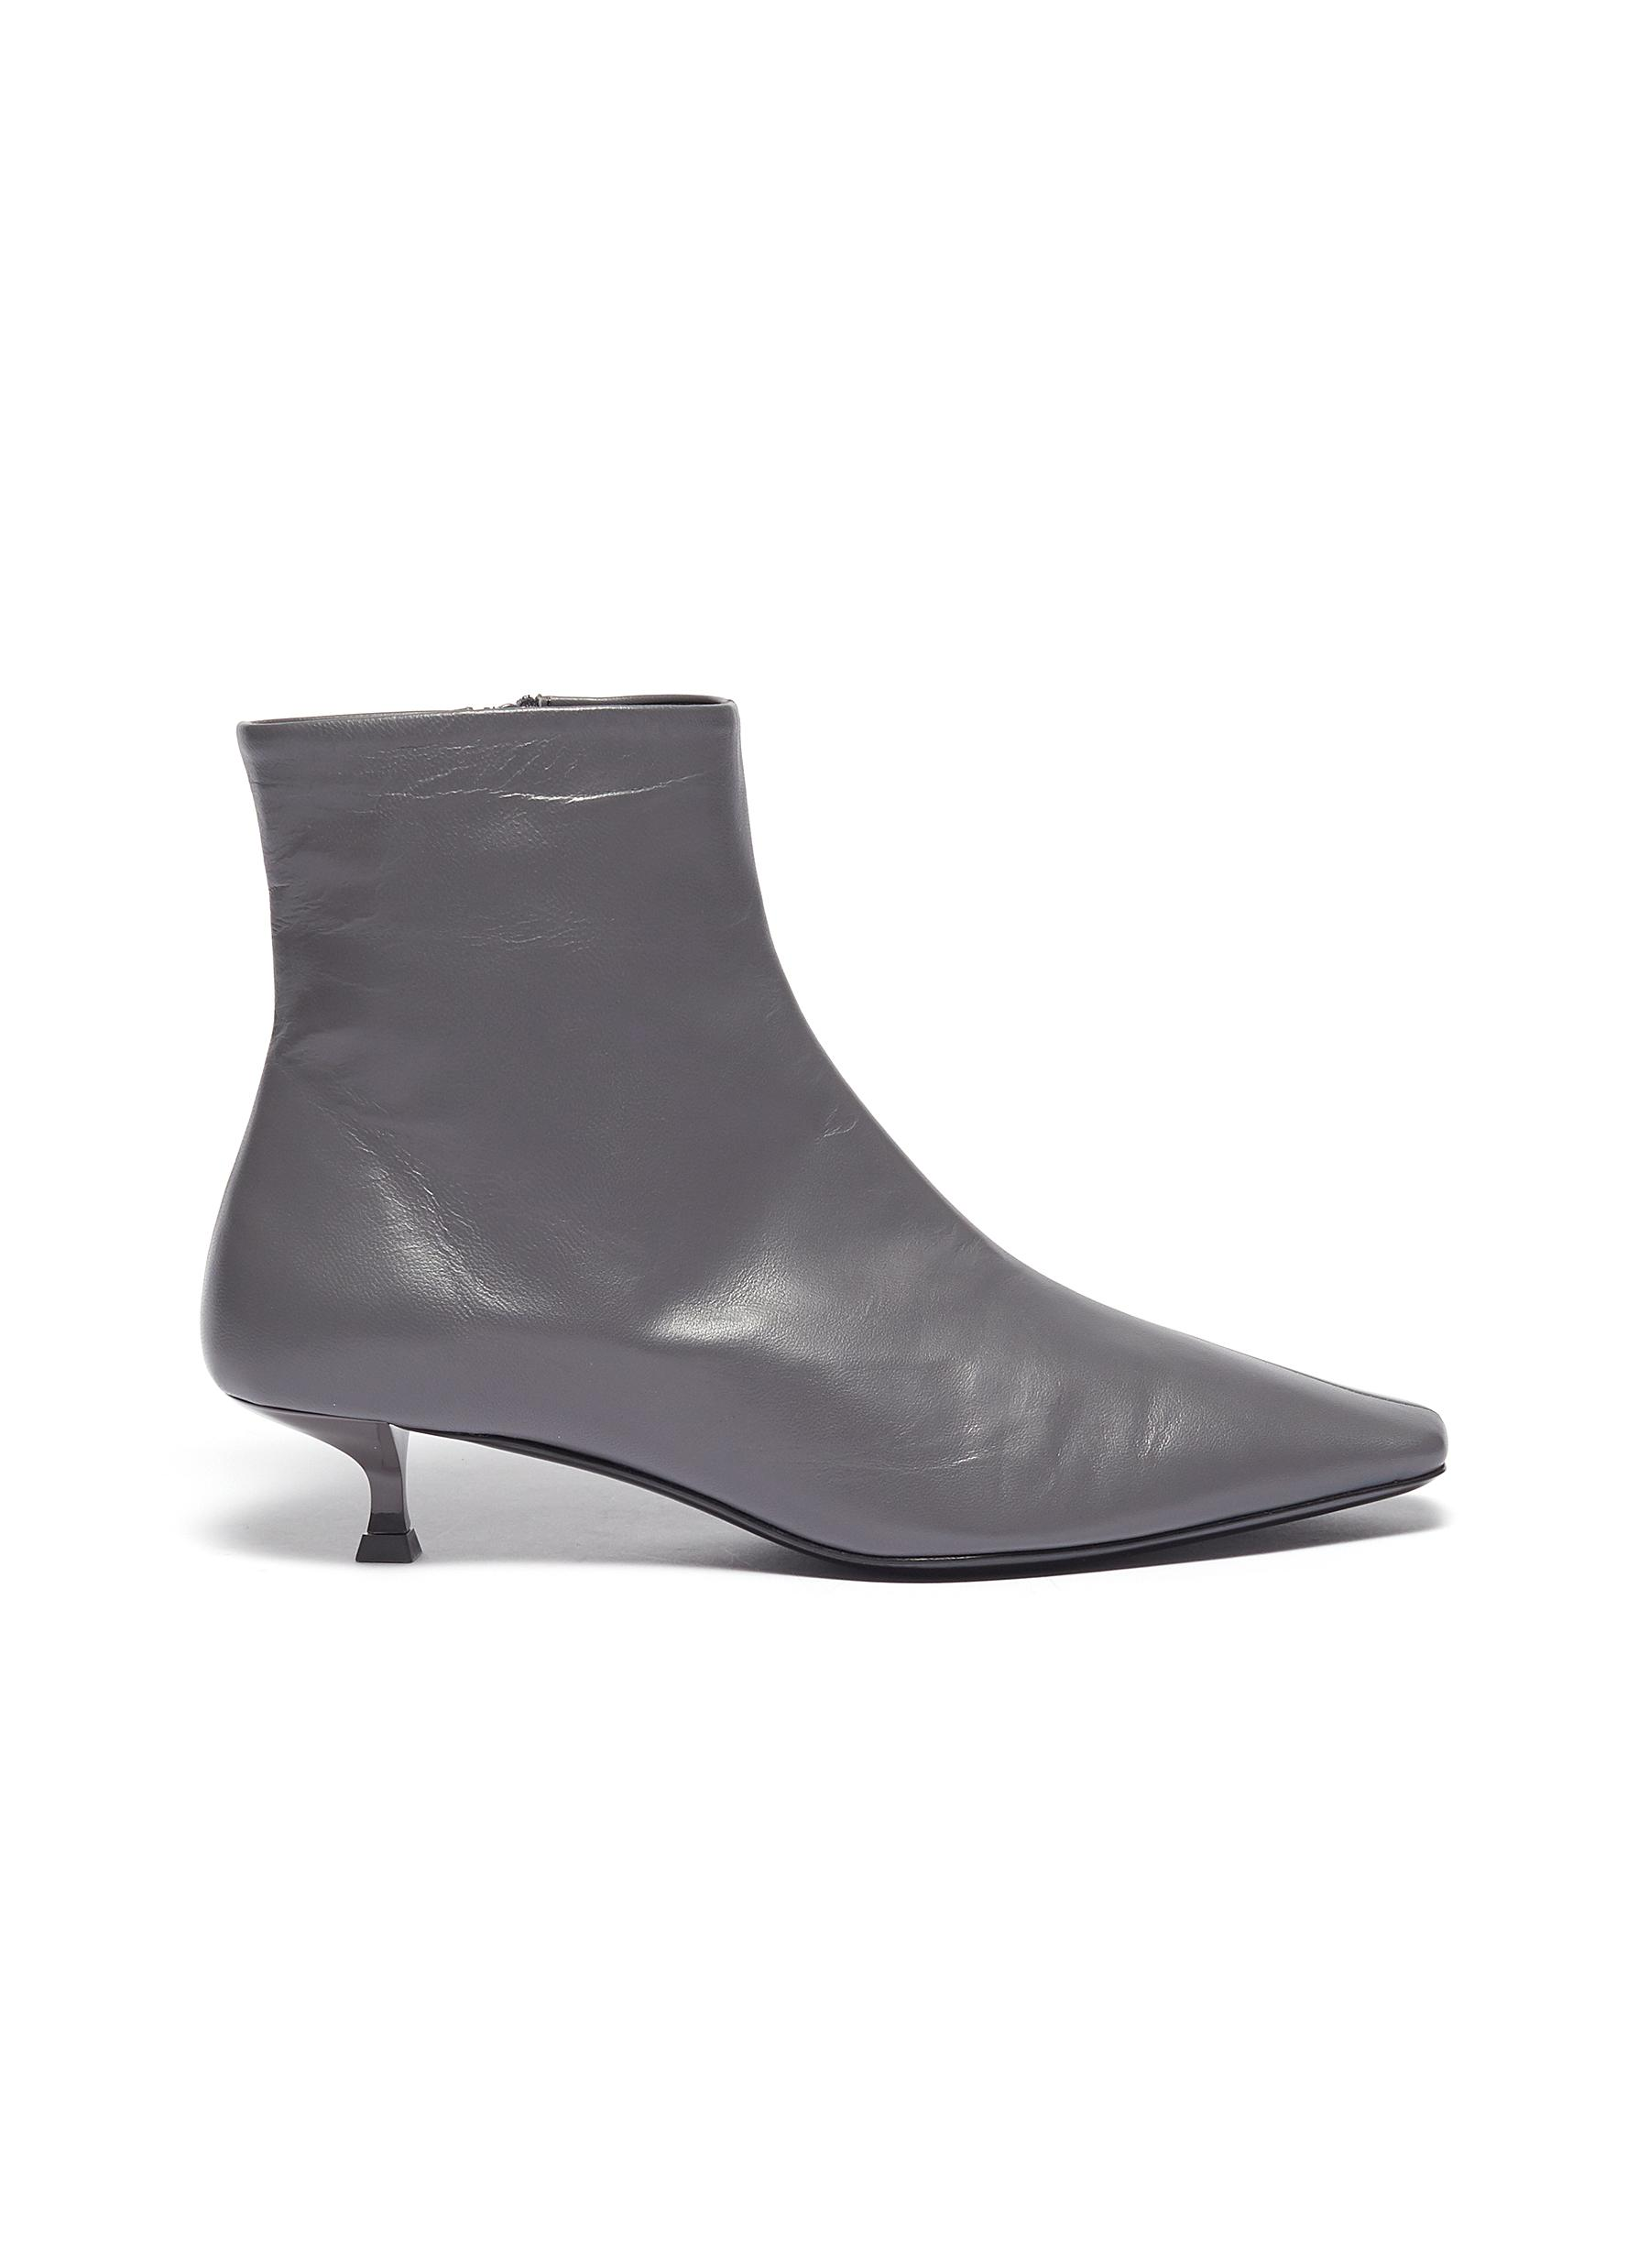 Laura leather ankle boots by By Far